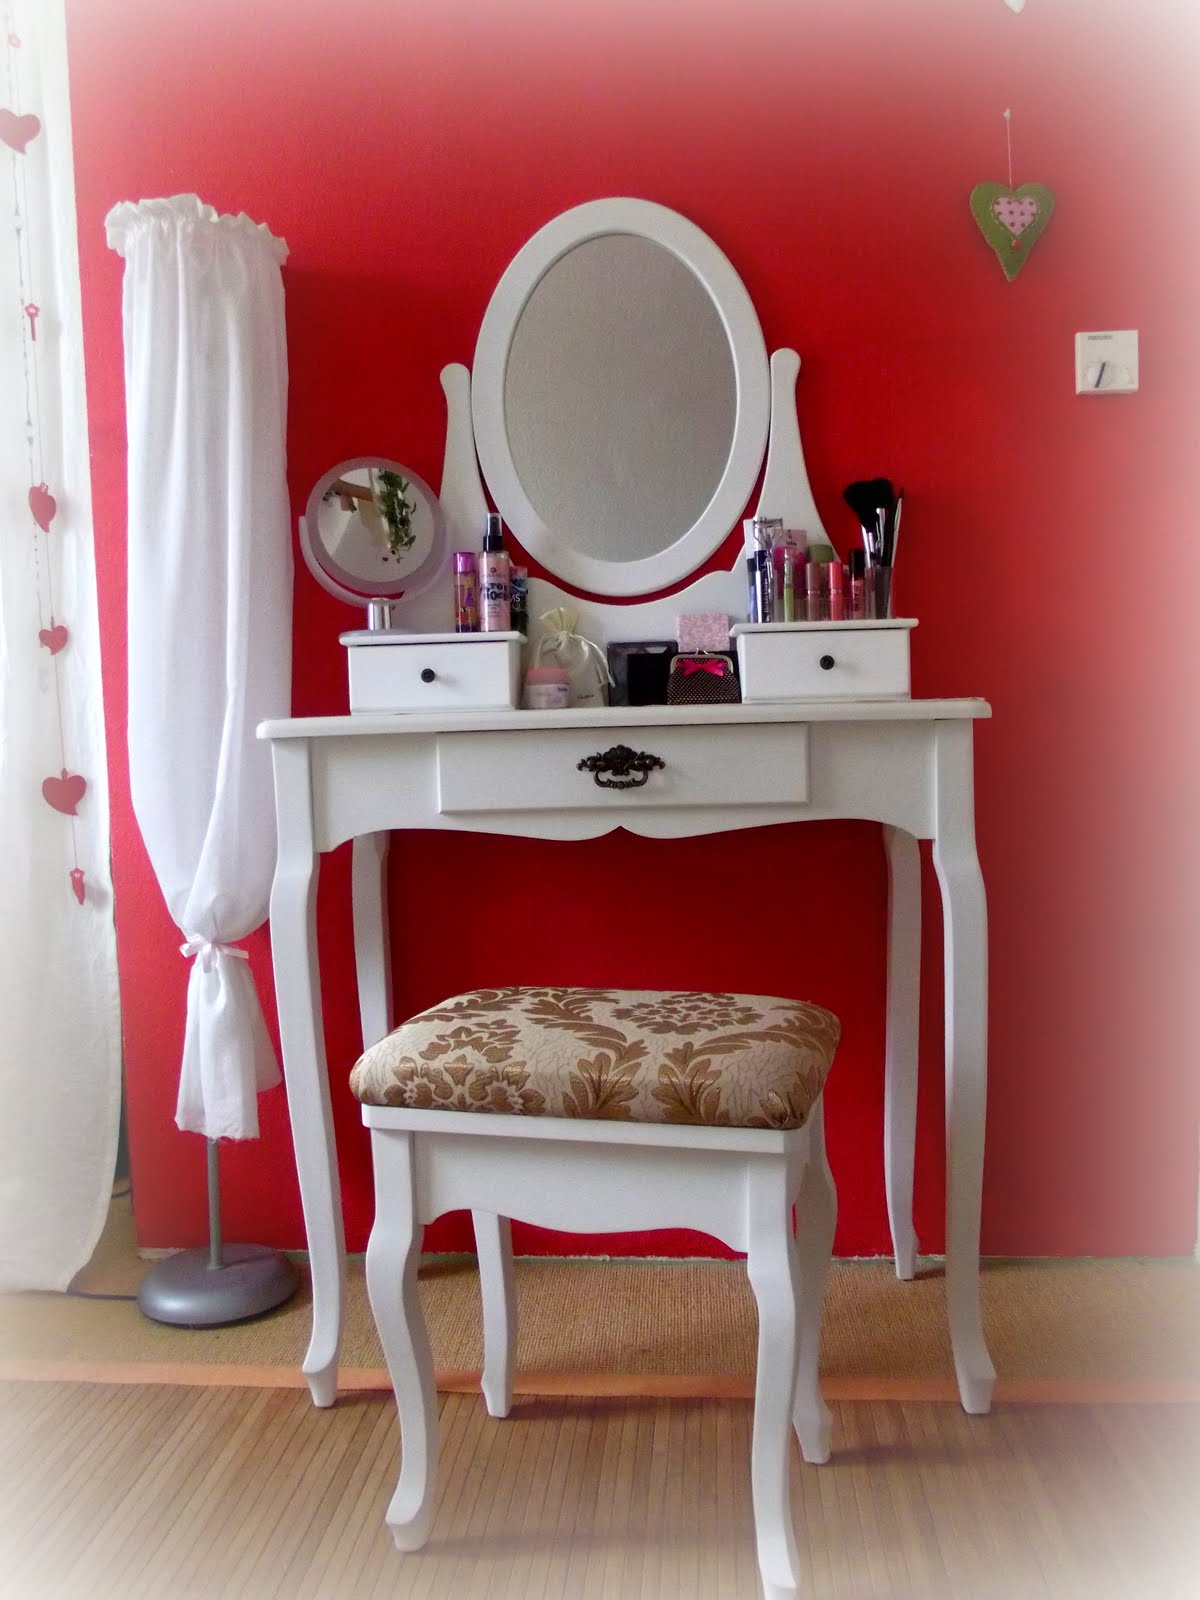 things for princess august 2011. Black Bedroom Furniture Sets. Home Design Ideas